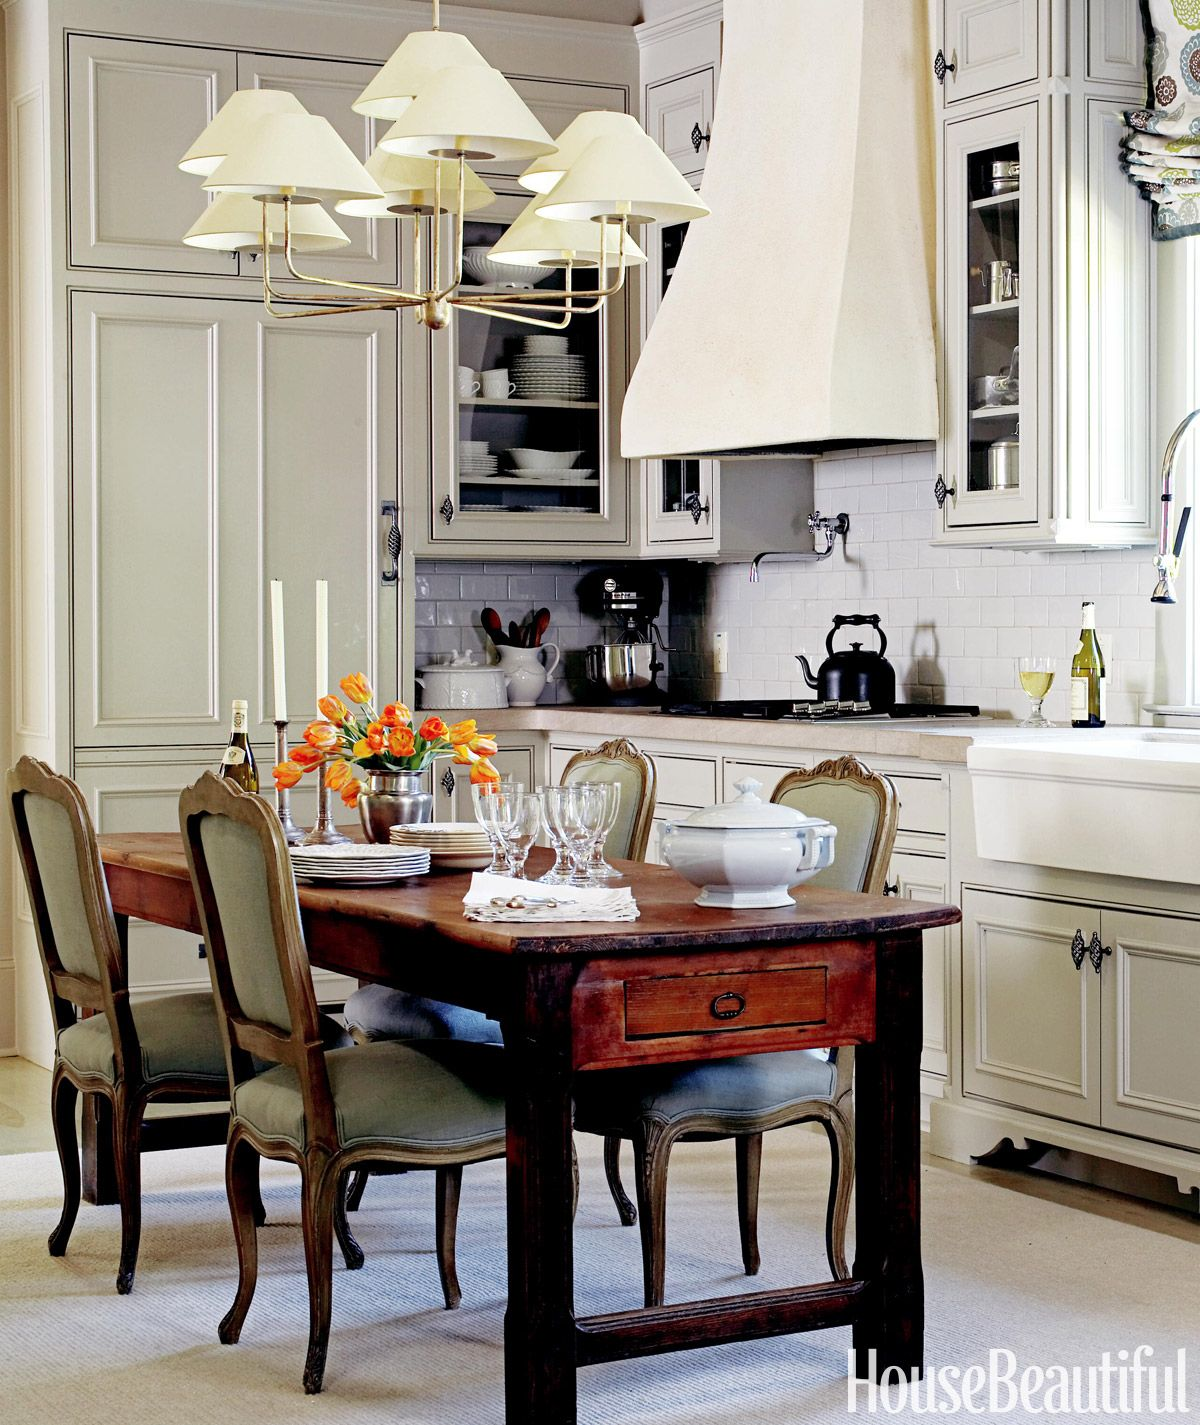 French kitchen table   Chic and Elegant Kitchen Tables  Dining chairs Linens and Farming